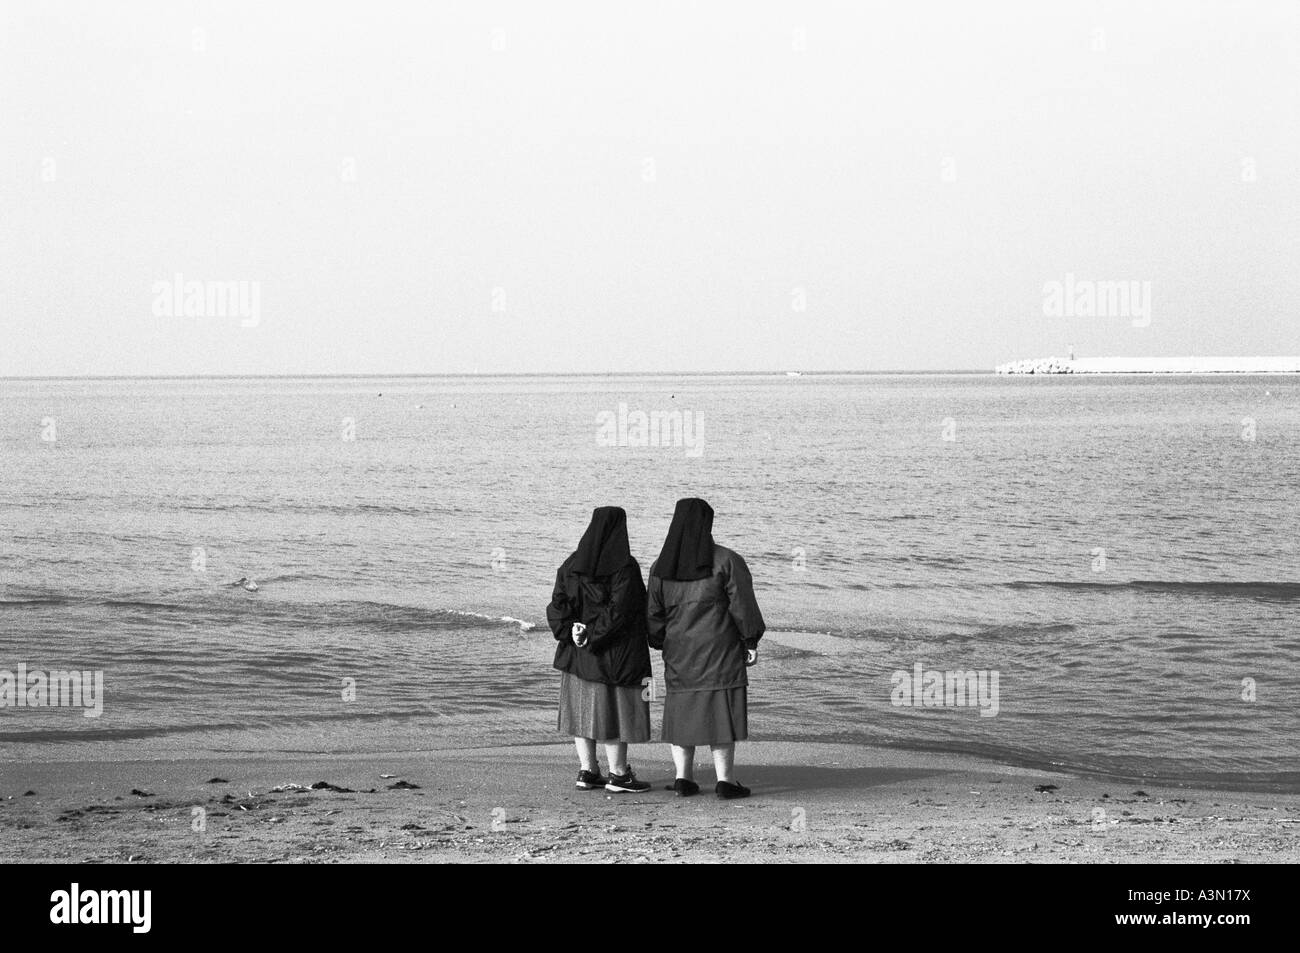 Sisters contemplating the sea - Stock Image